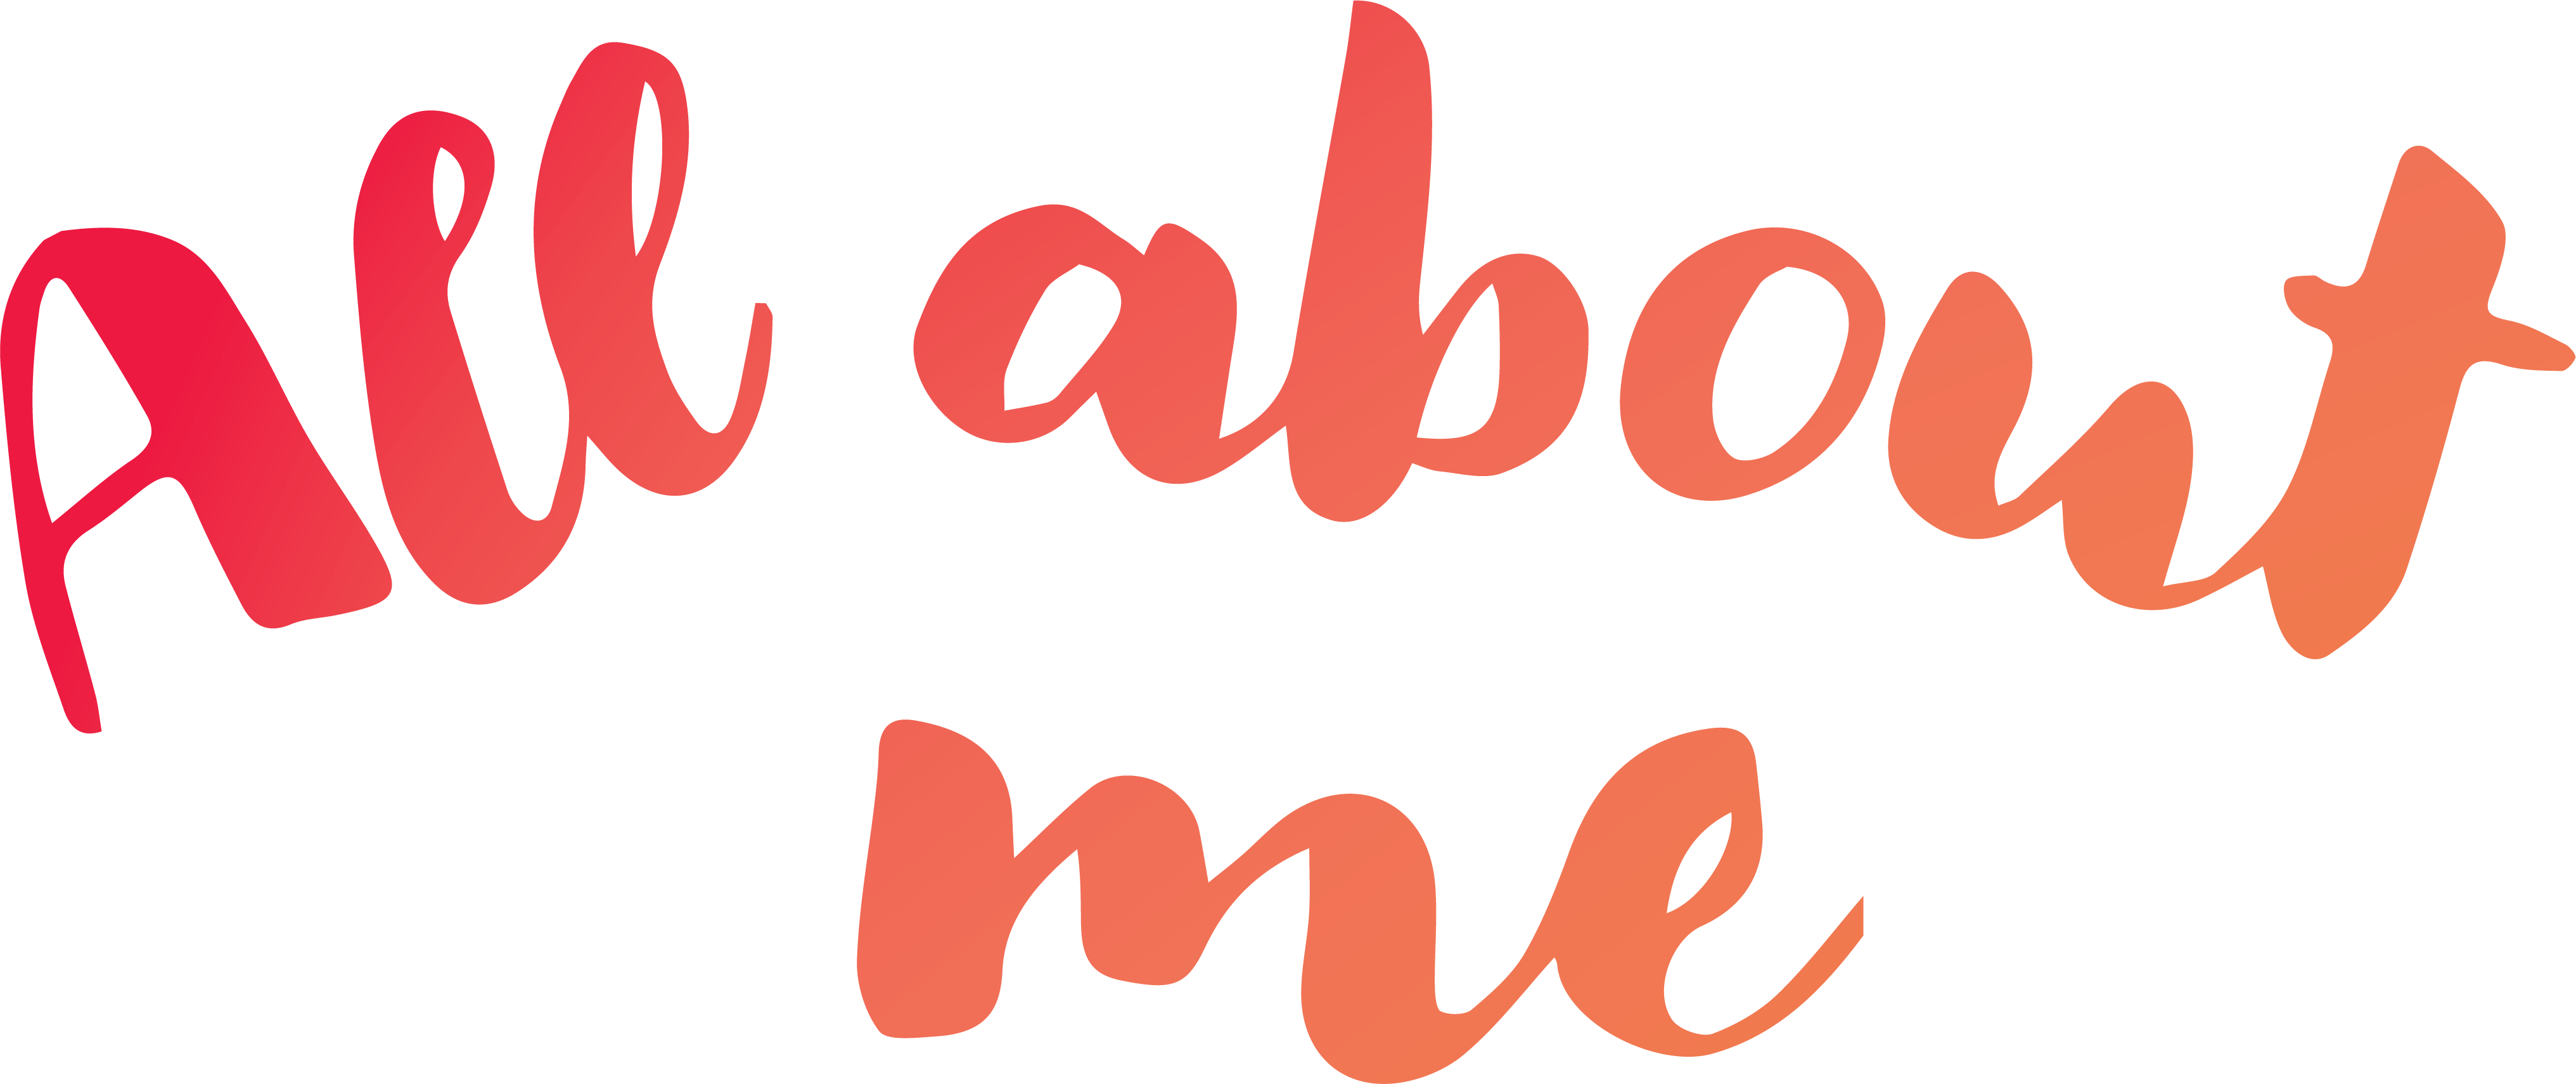 All About Me Png , Transparent Cartoon.